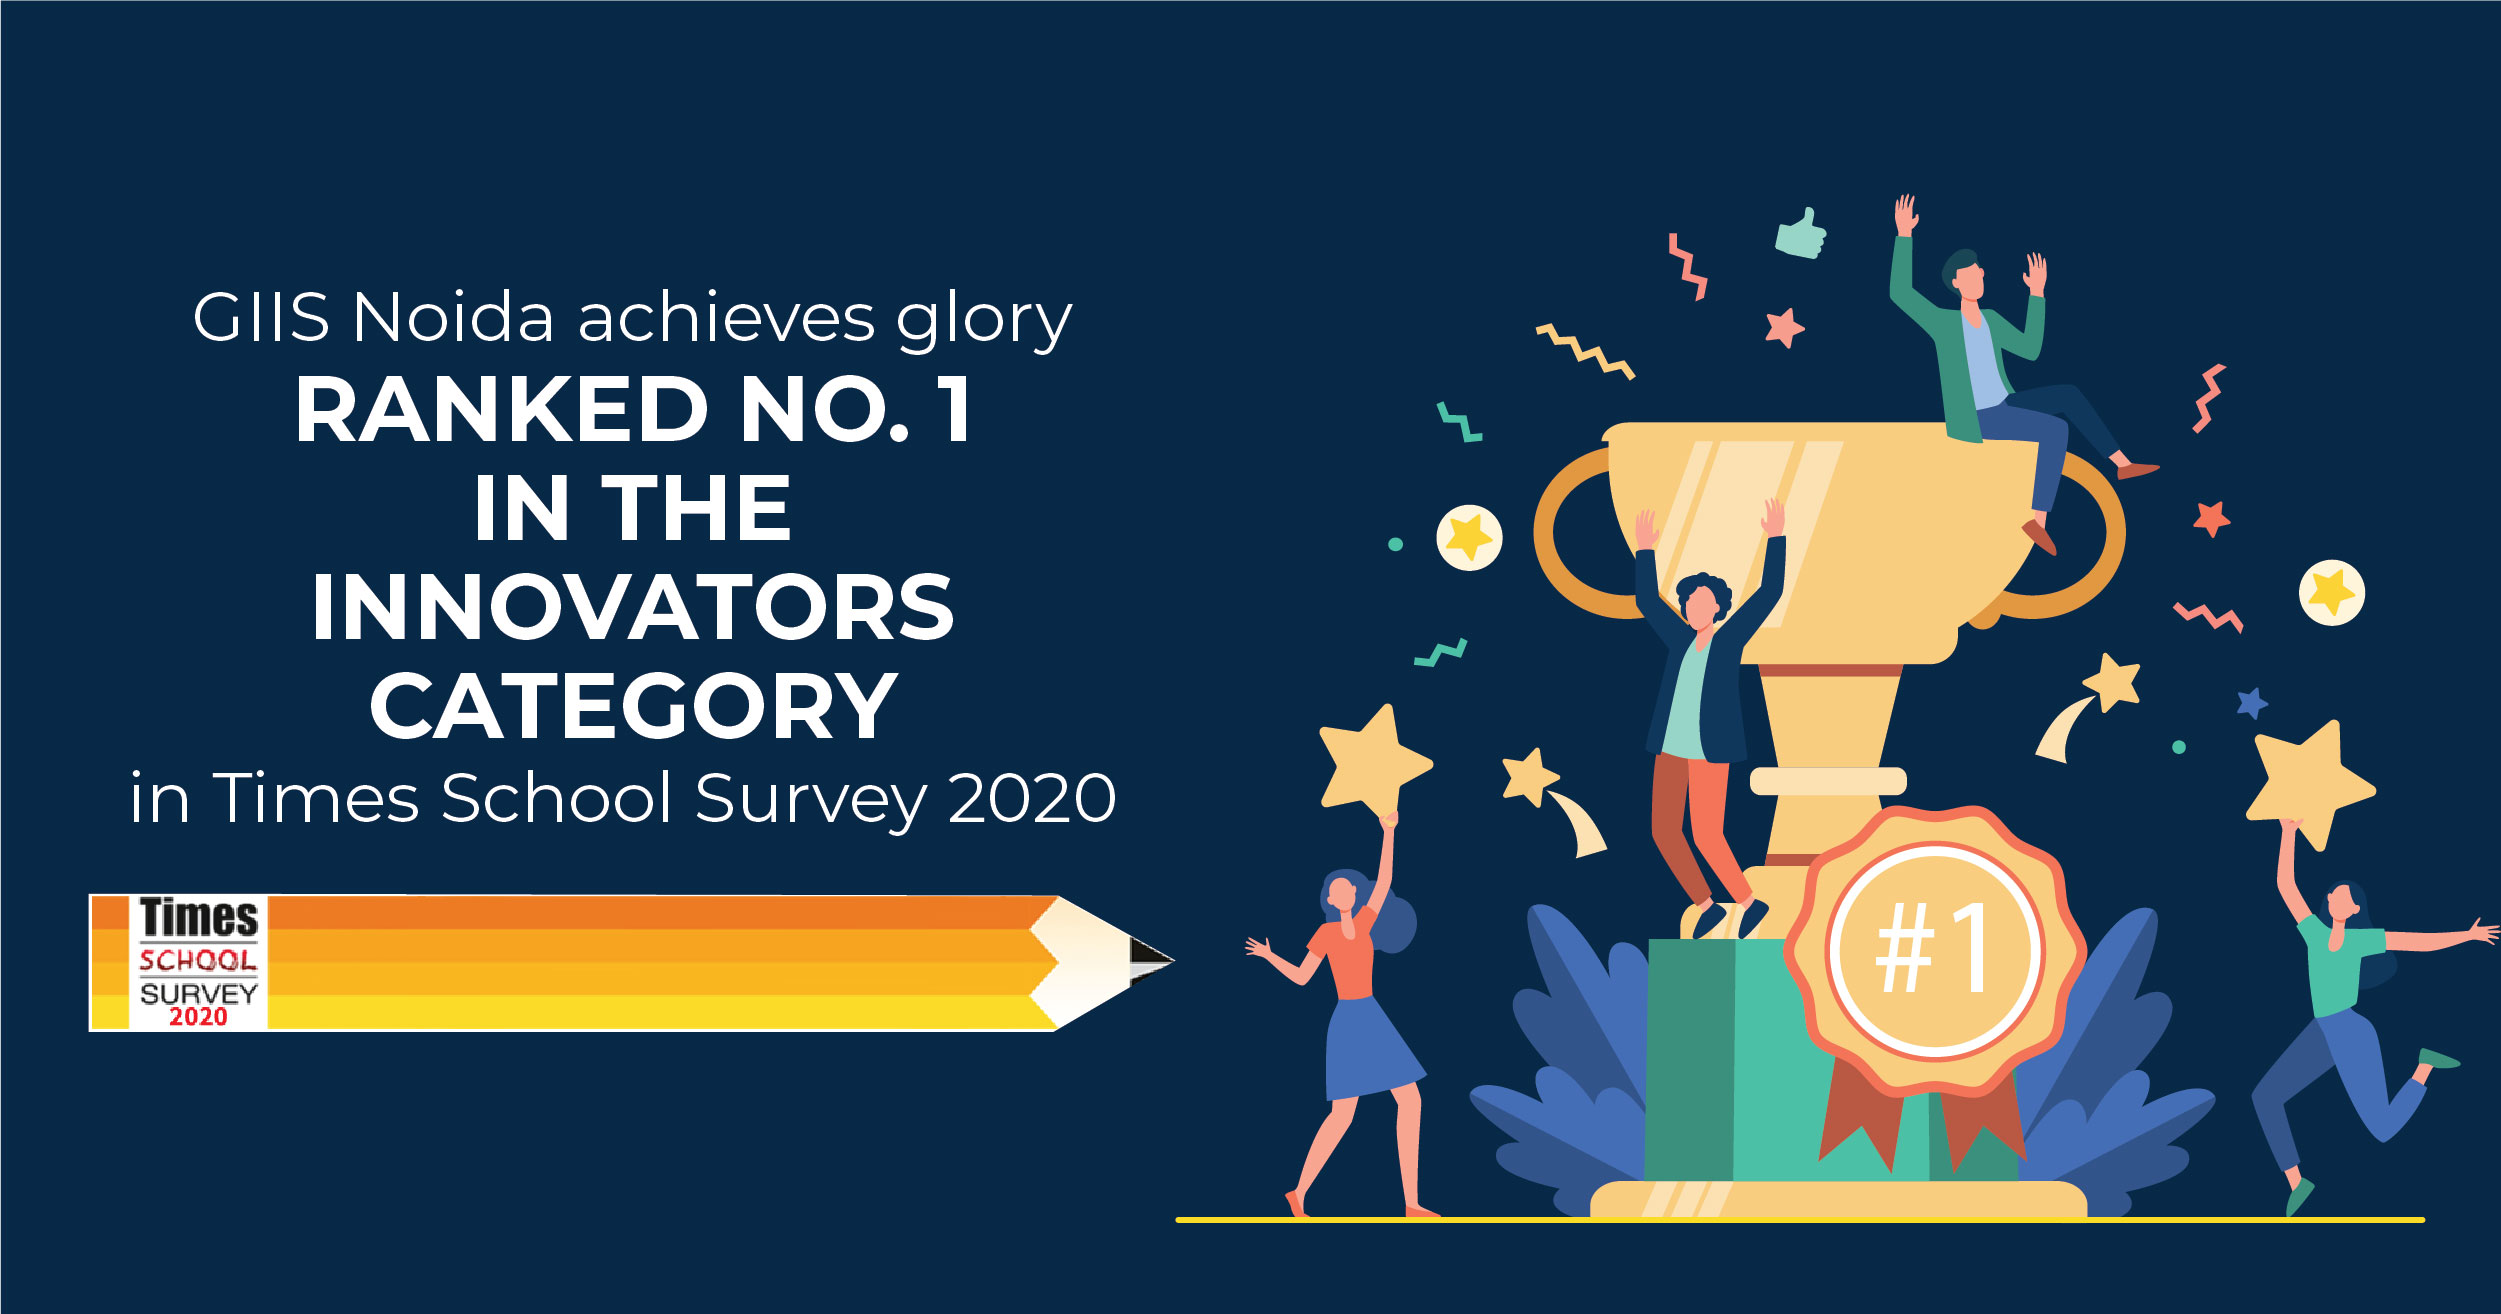 GIIS Noida ranks number 1 in Times School Survey 2020